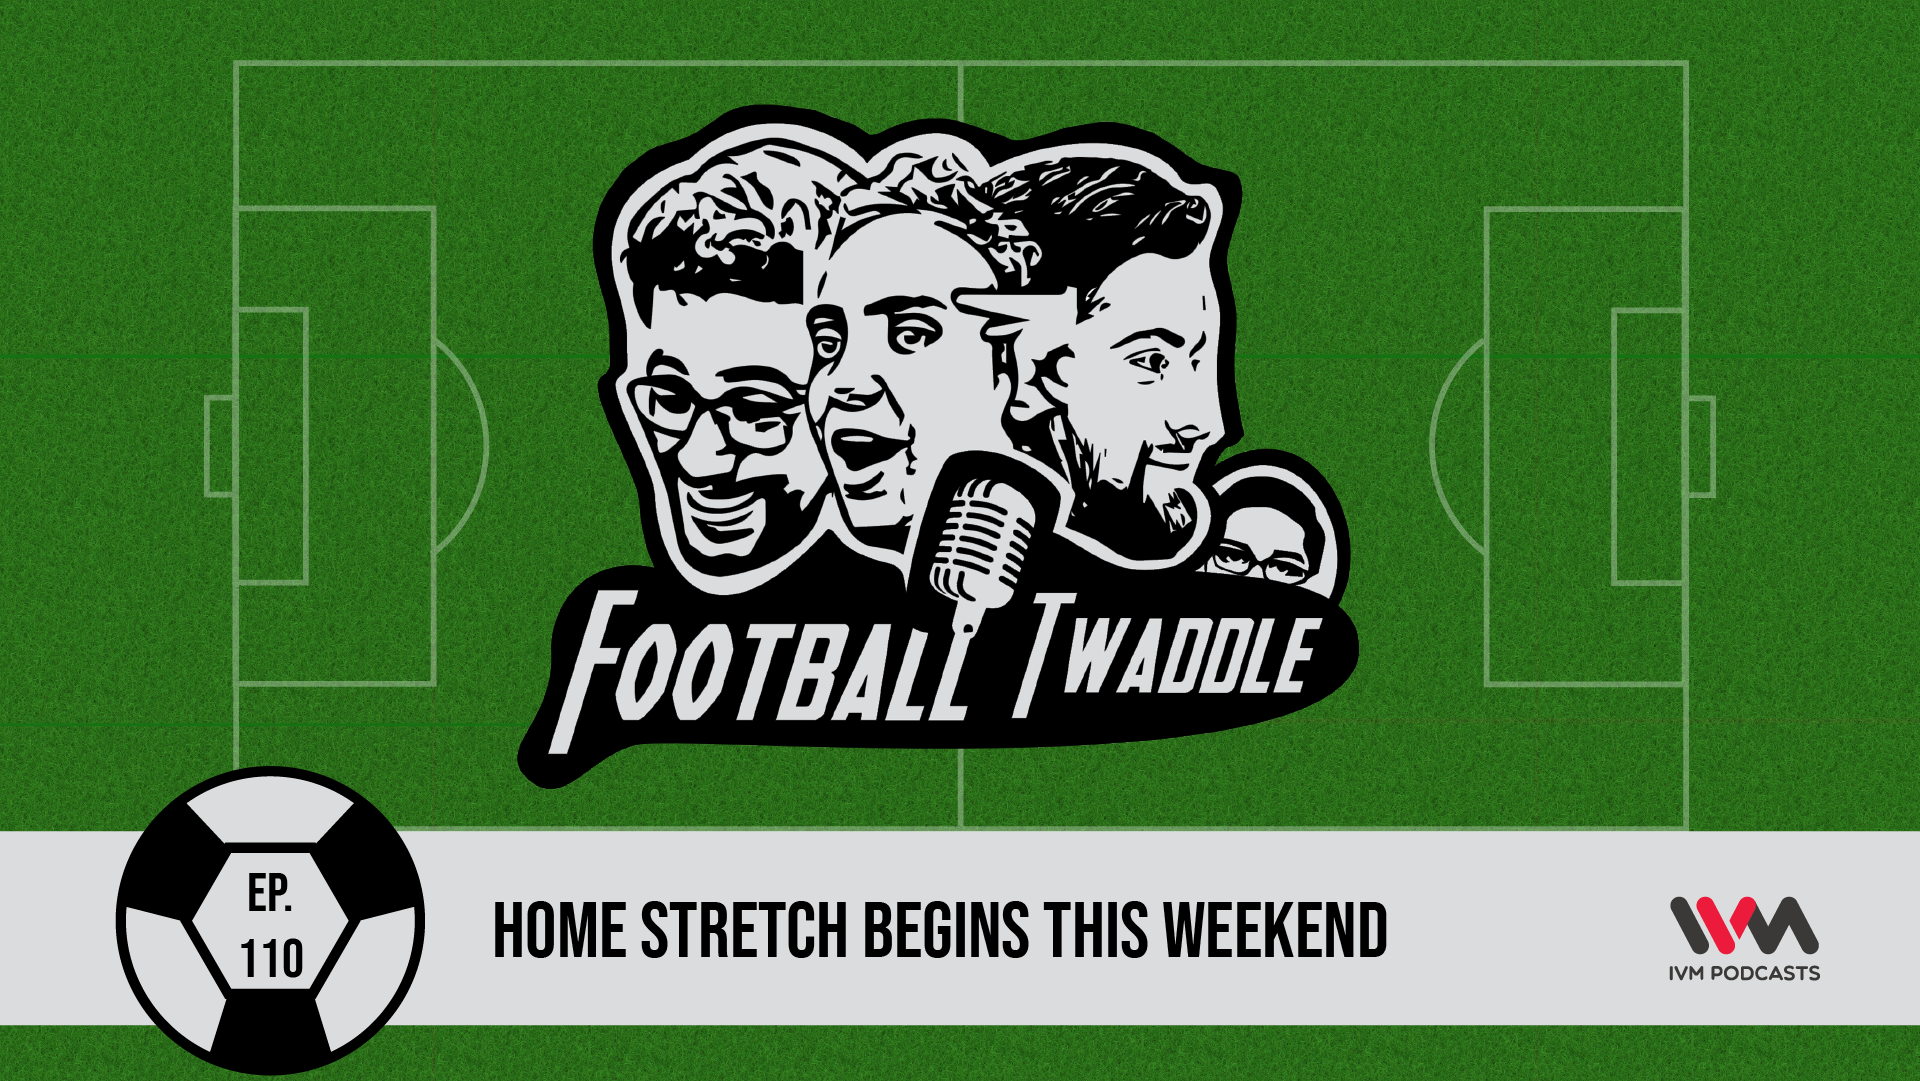 FootballTwaddleEpisode110.png